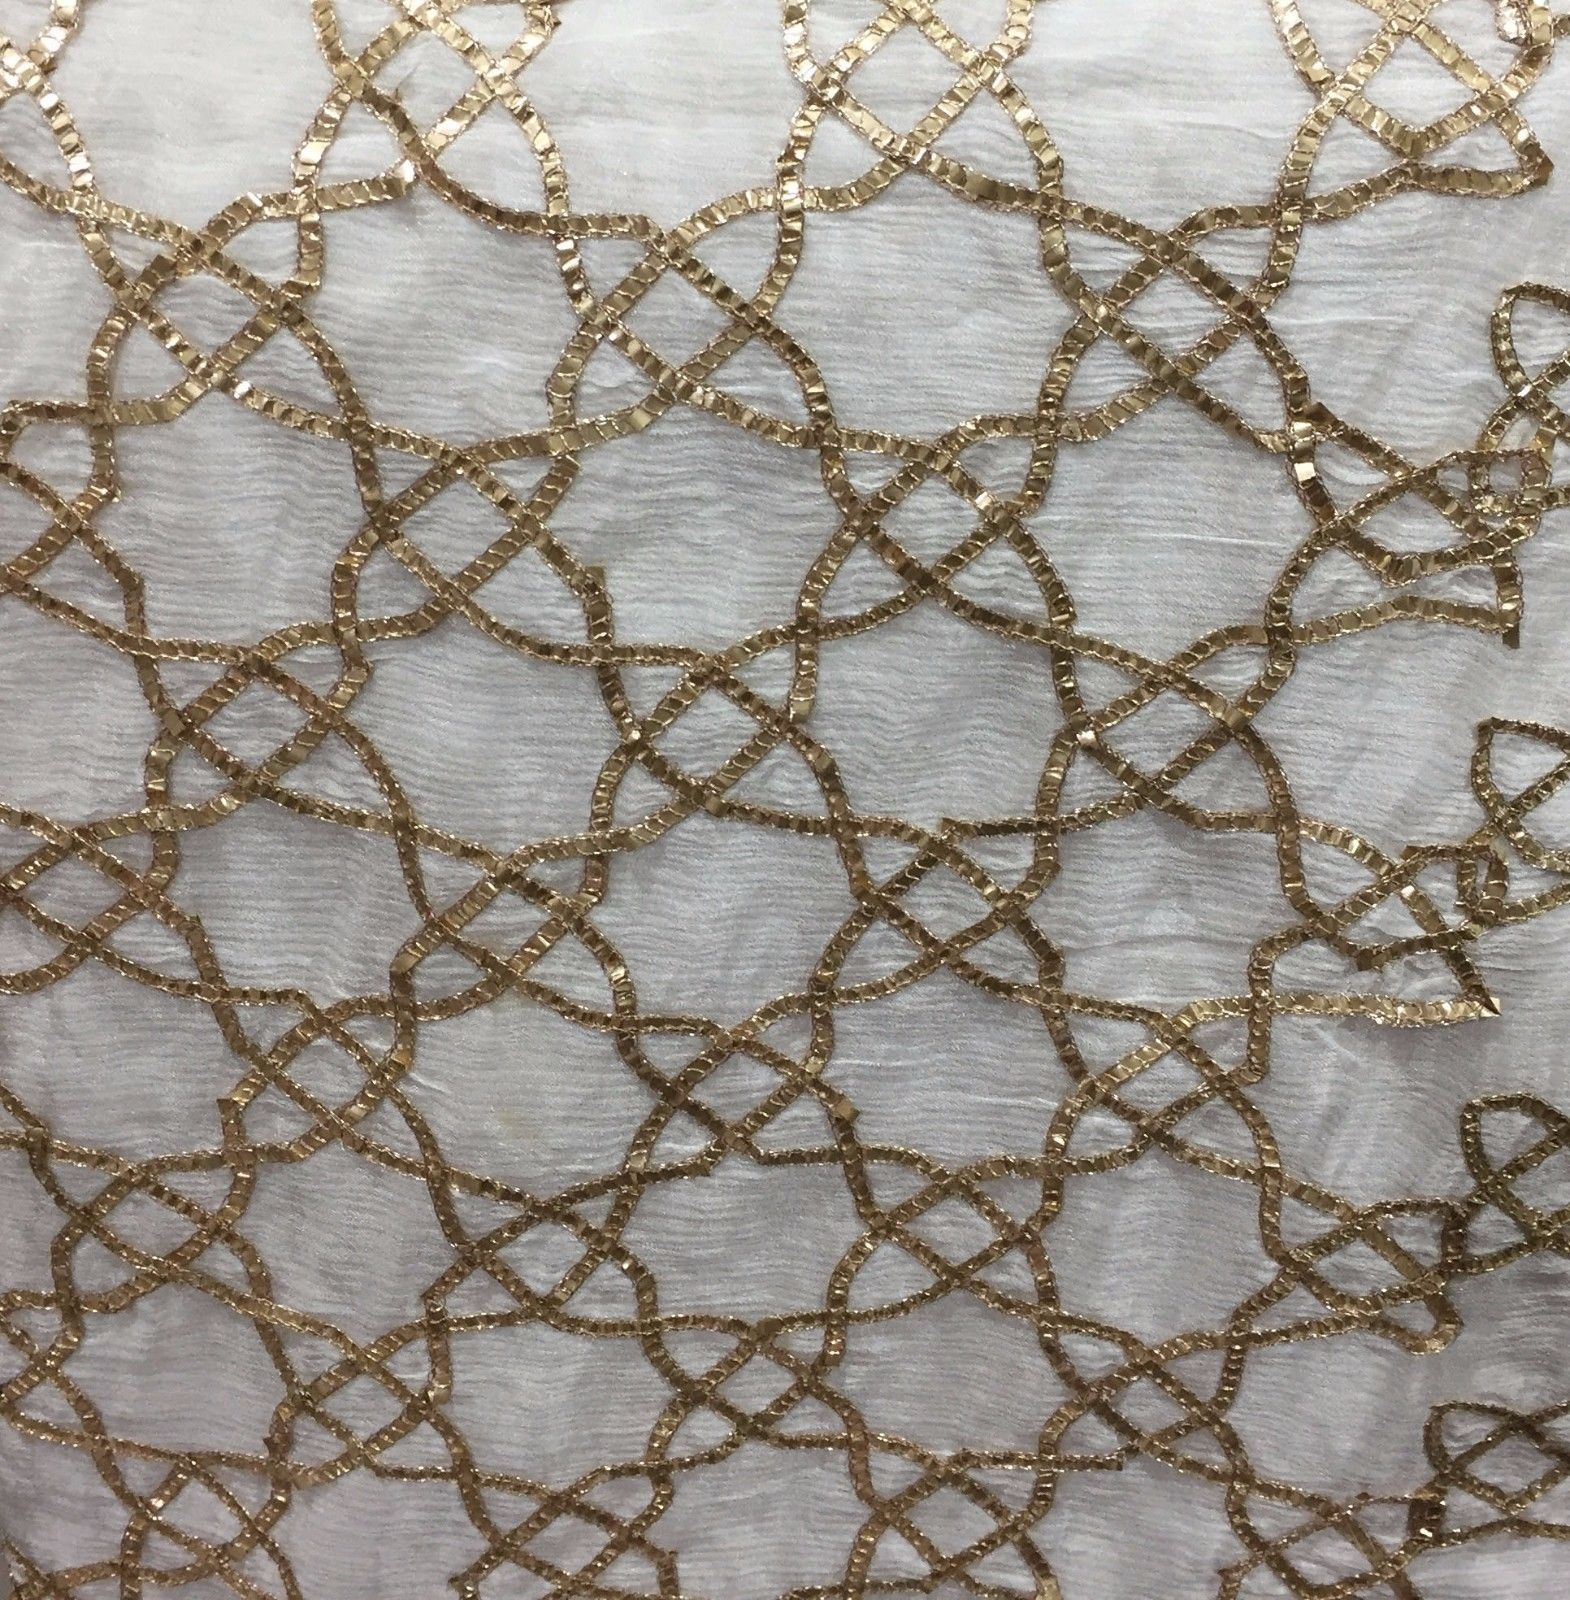 embroidery fabric online fancy embroidered fabrics Chiffon White, Gold 41 inches Wide 8067